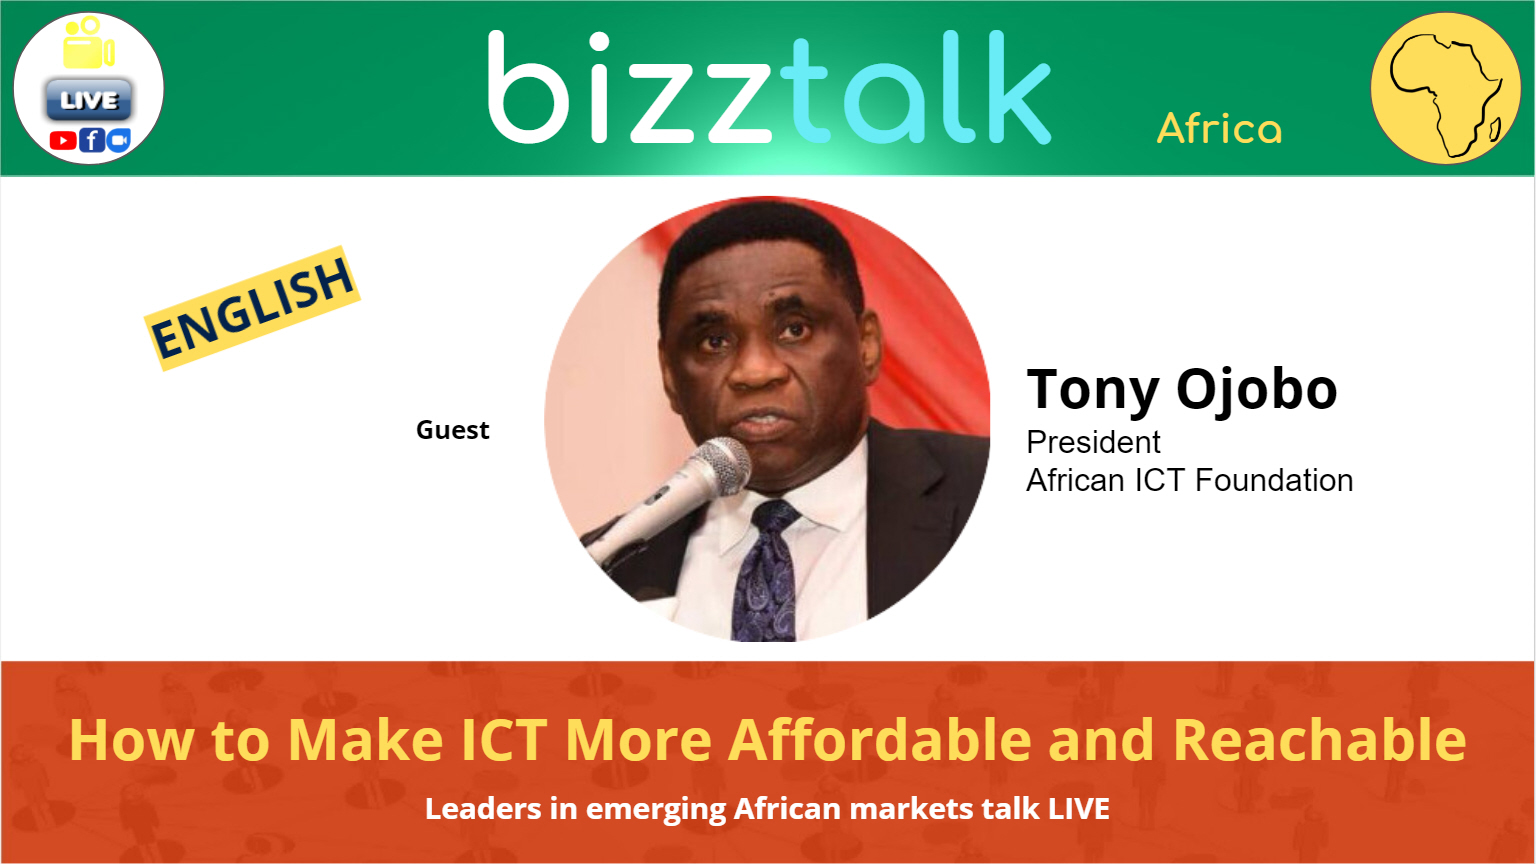 How to Make ICT More Affordable and Reachable